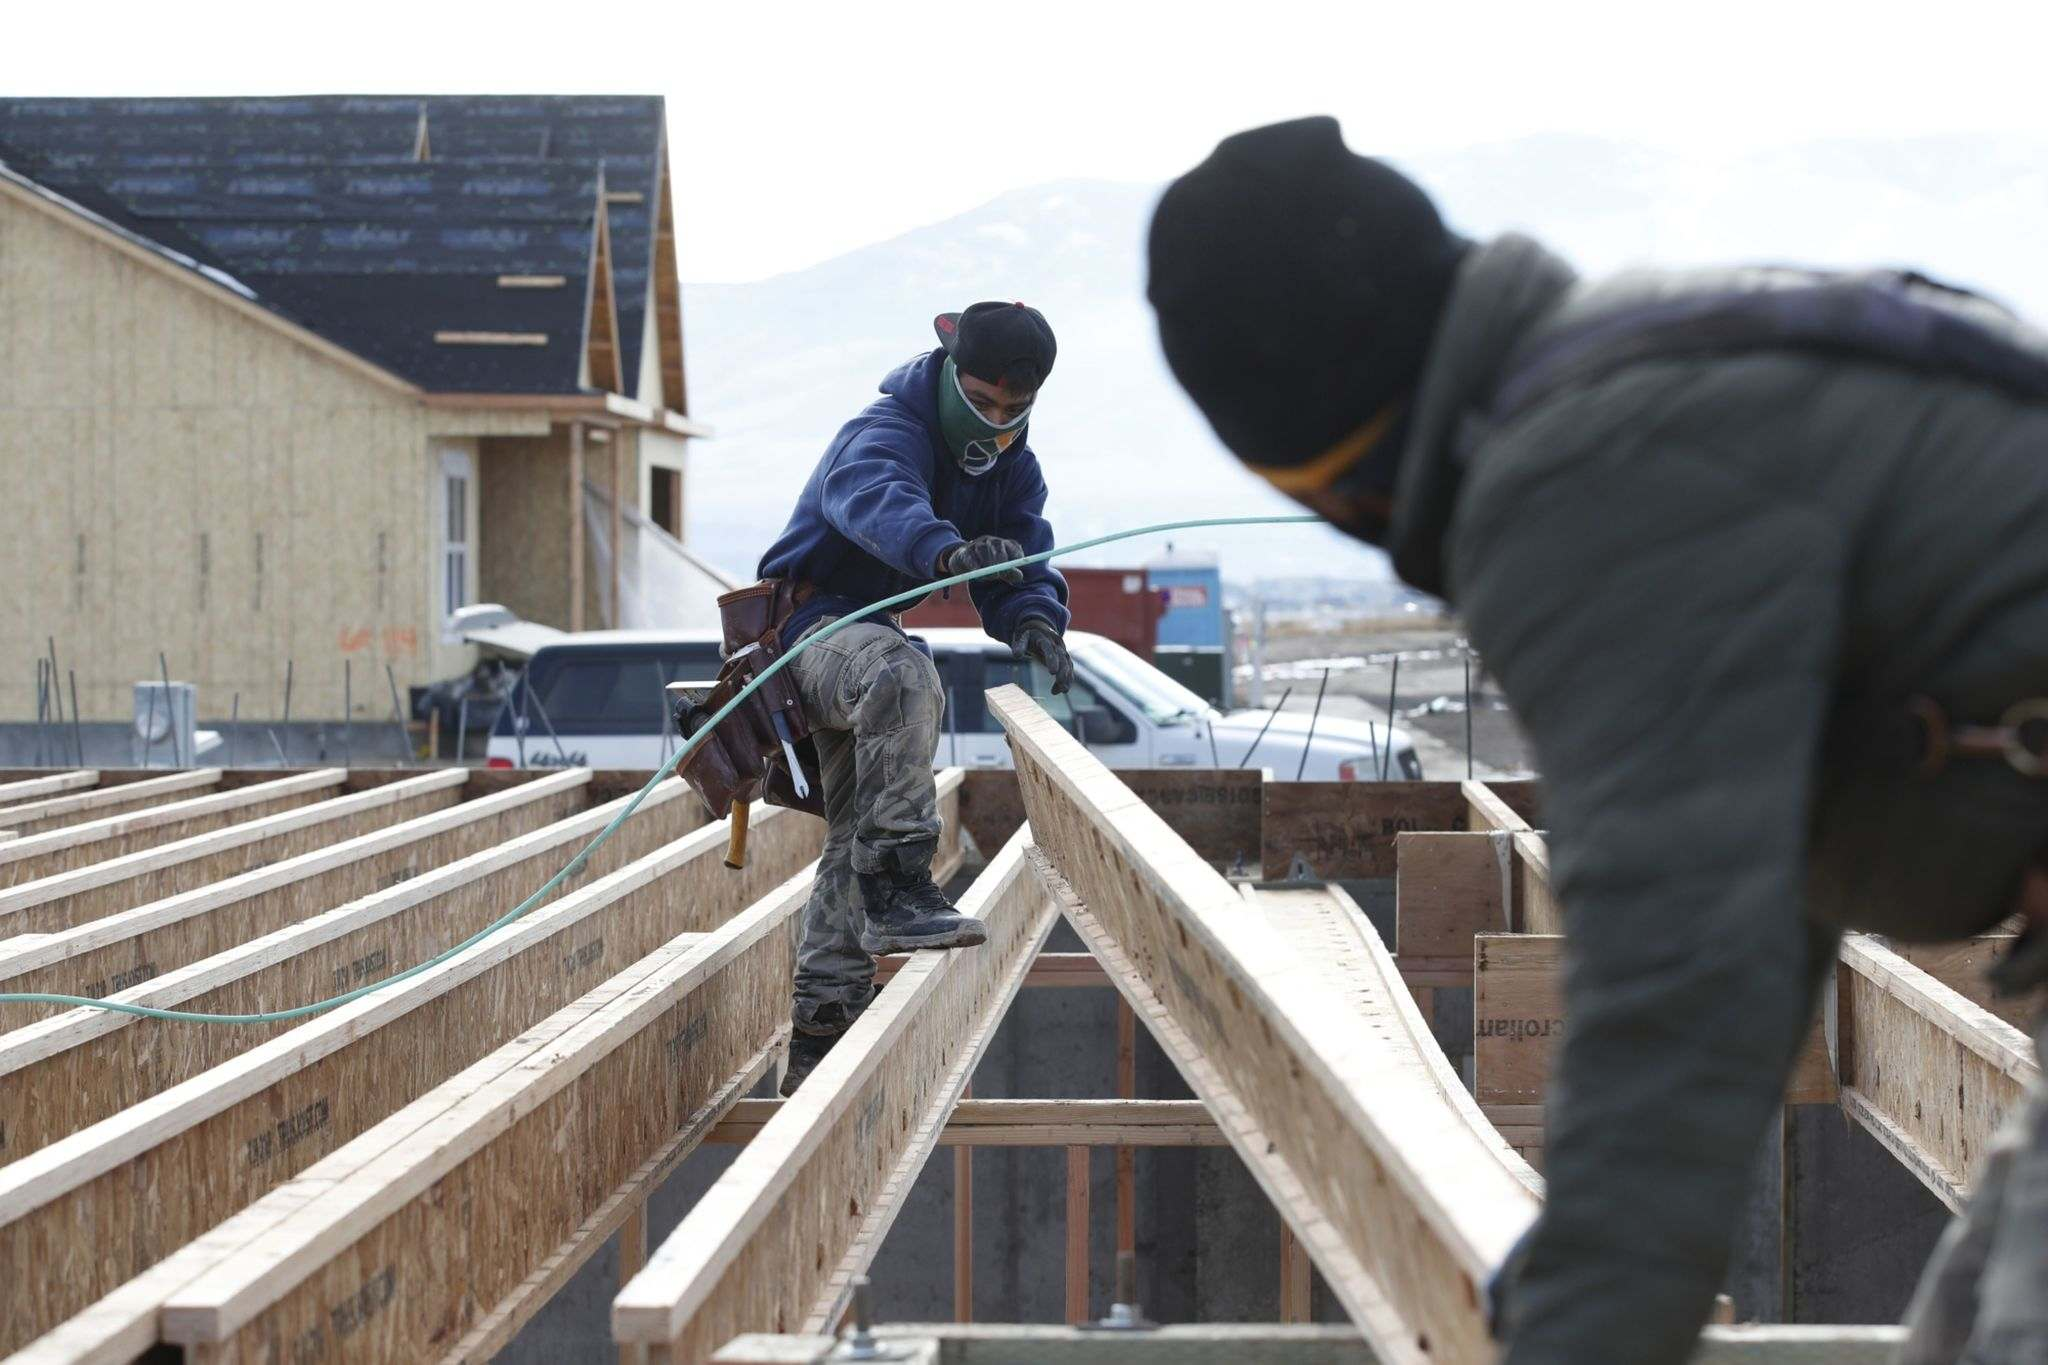 Manitoba land surveyors will inspect the infill site once a foundation is in place to ensure the build complies with approved plans before further development occurs. (George Frey / Bloomberg files)</p>